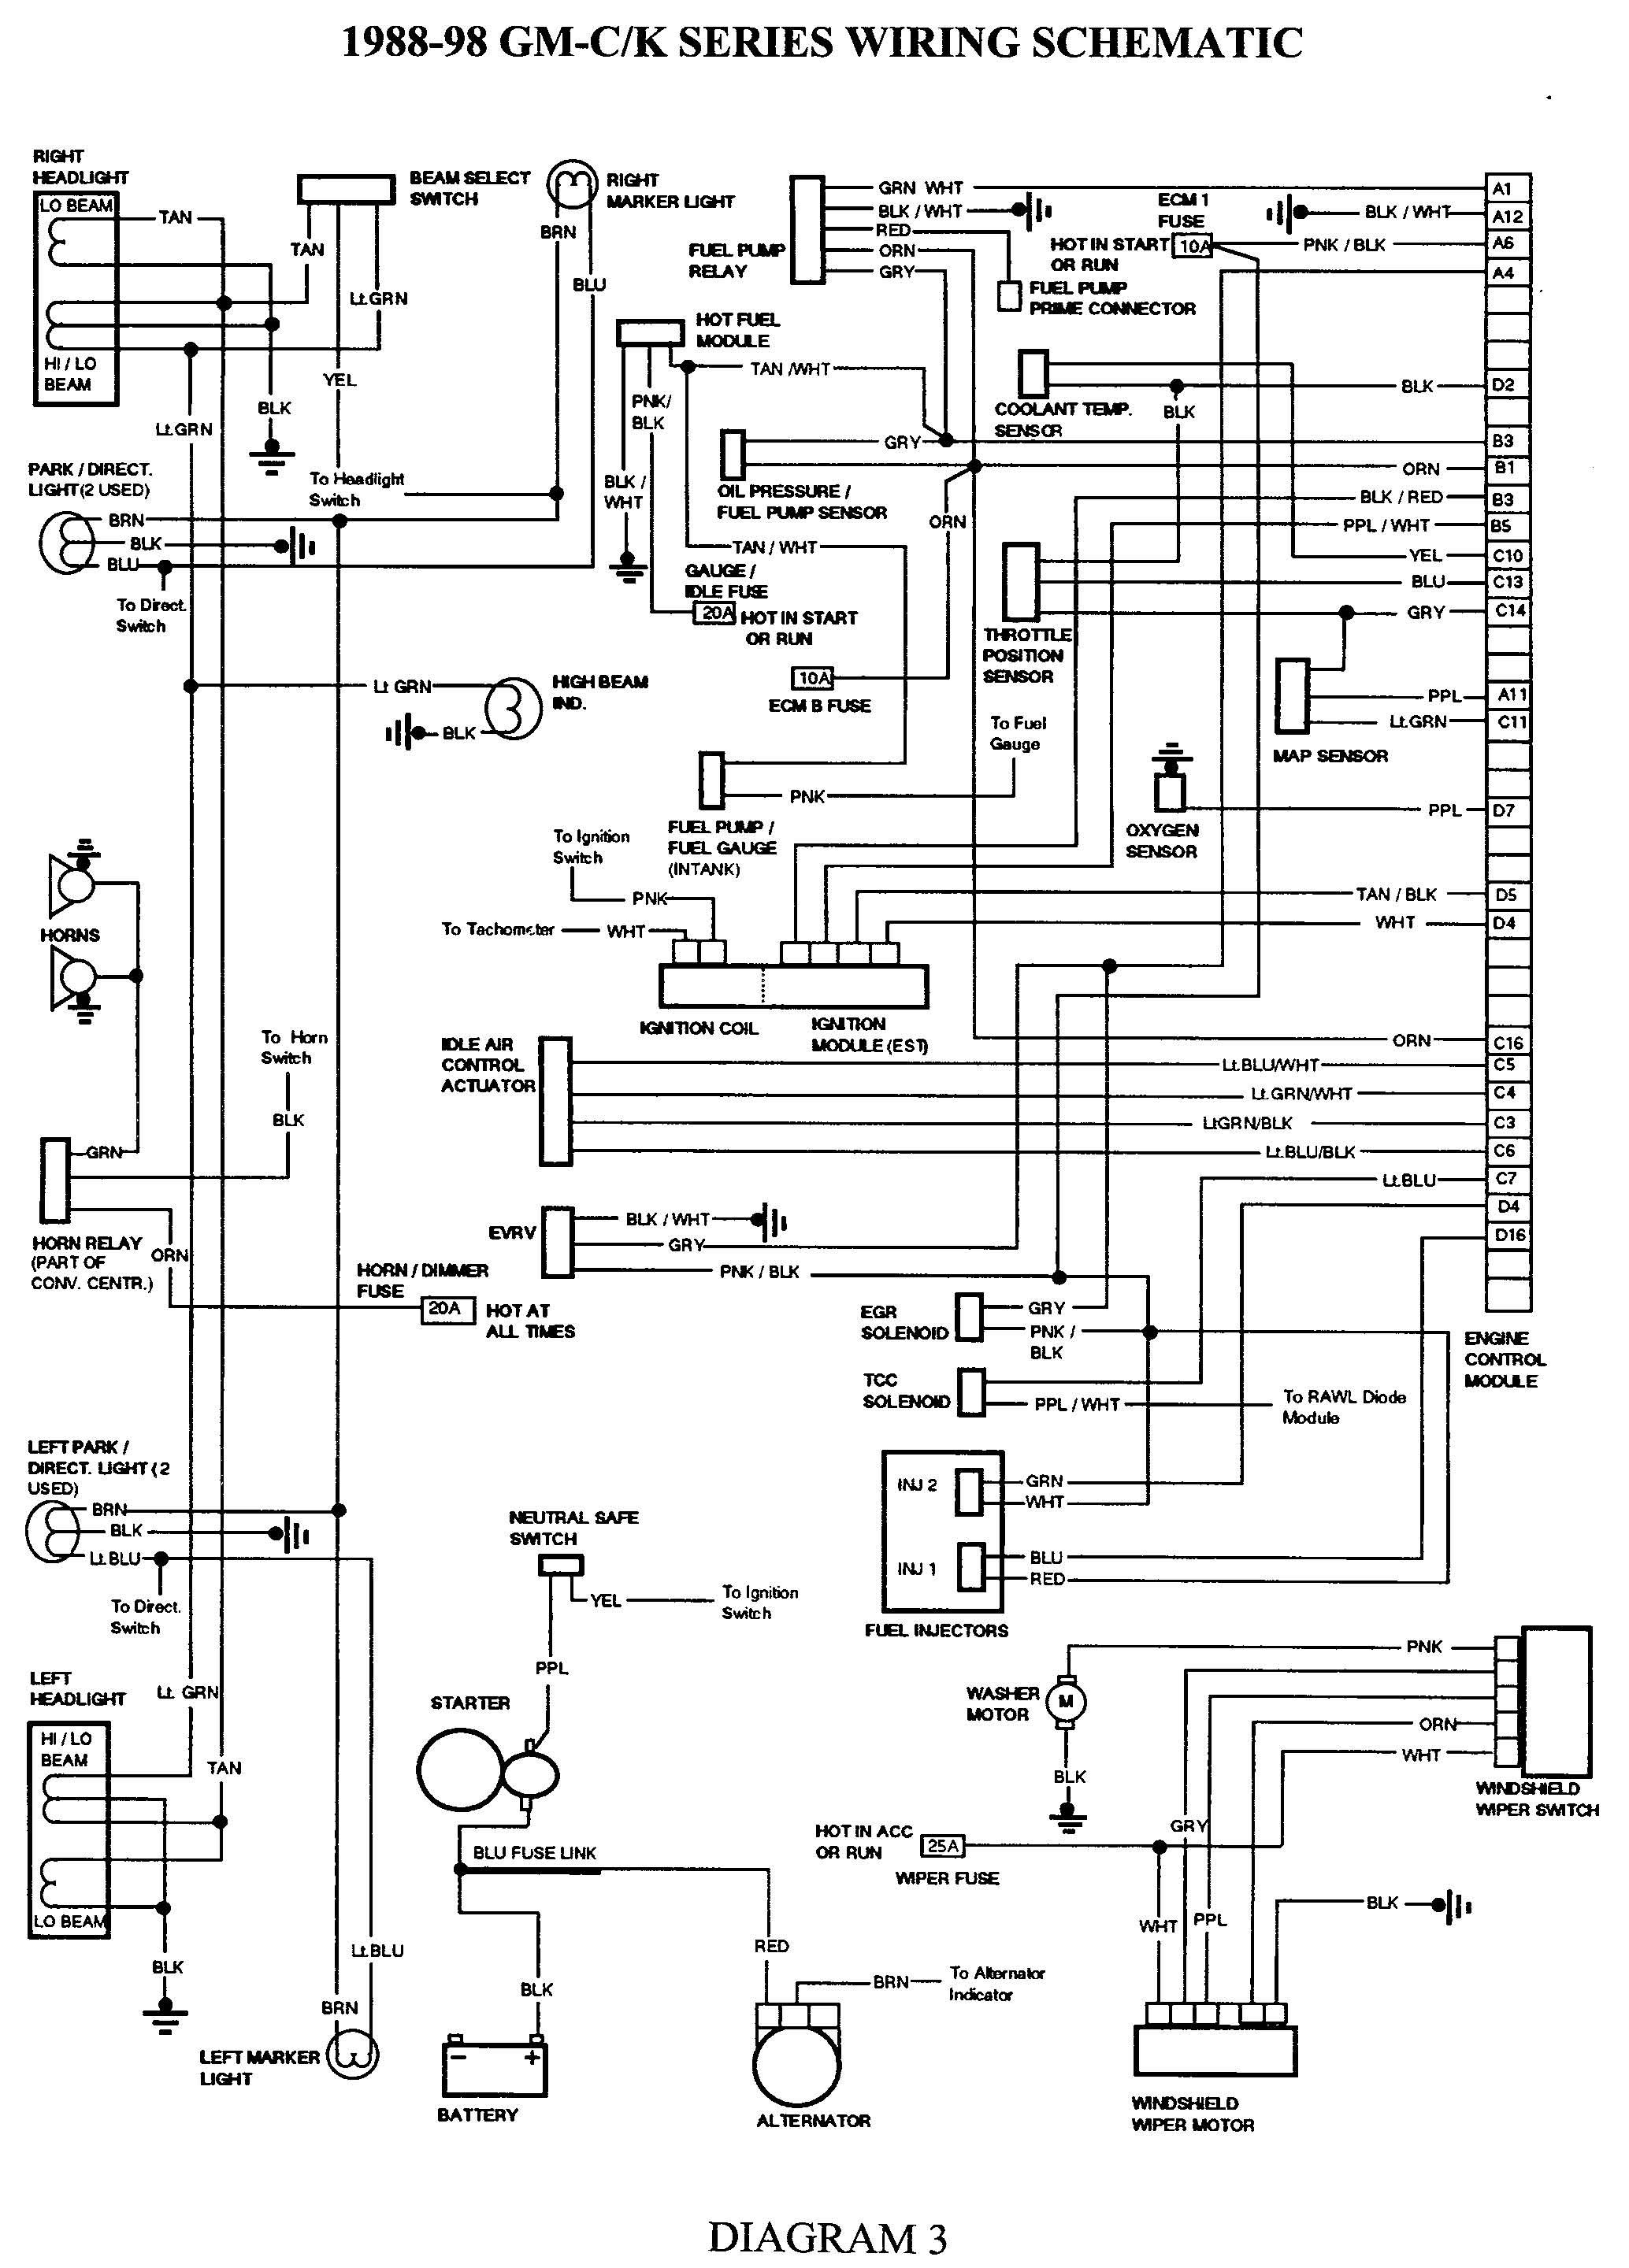 small resolution of gmc truck wiring diagrams on gm wiring harness diagram 88 98 kc diagram they had different wires after 1988 here is the gauge wires